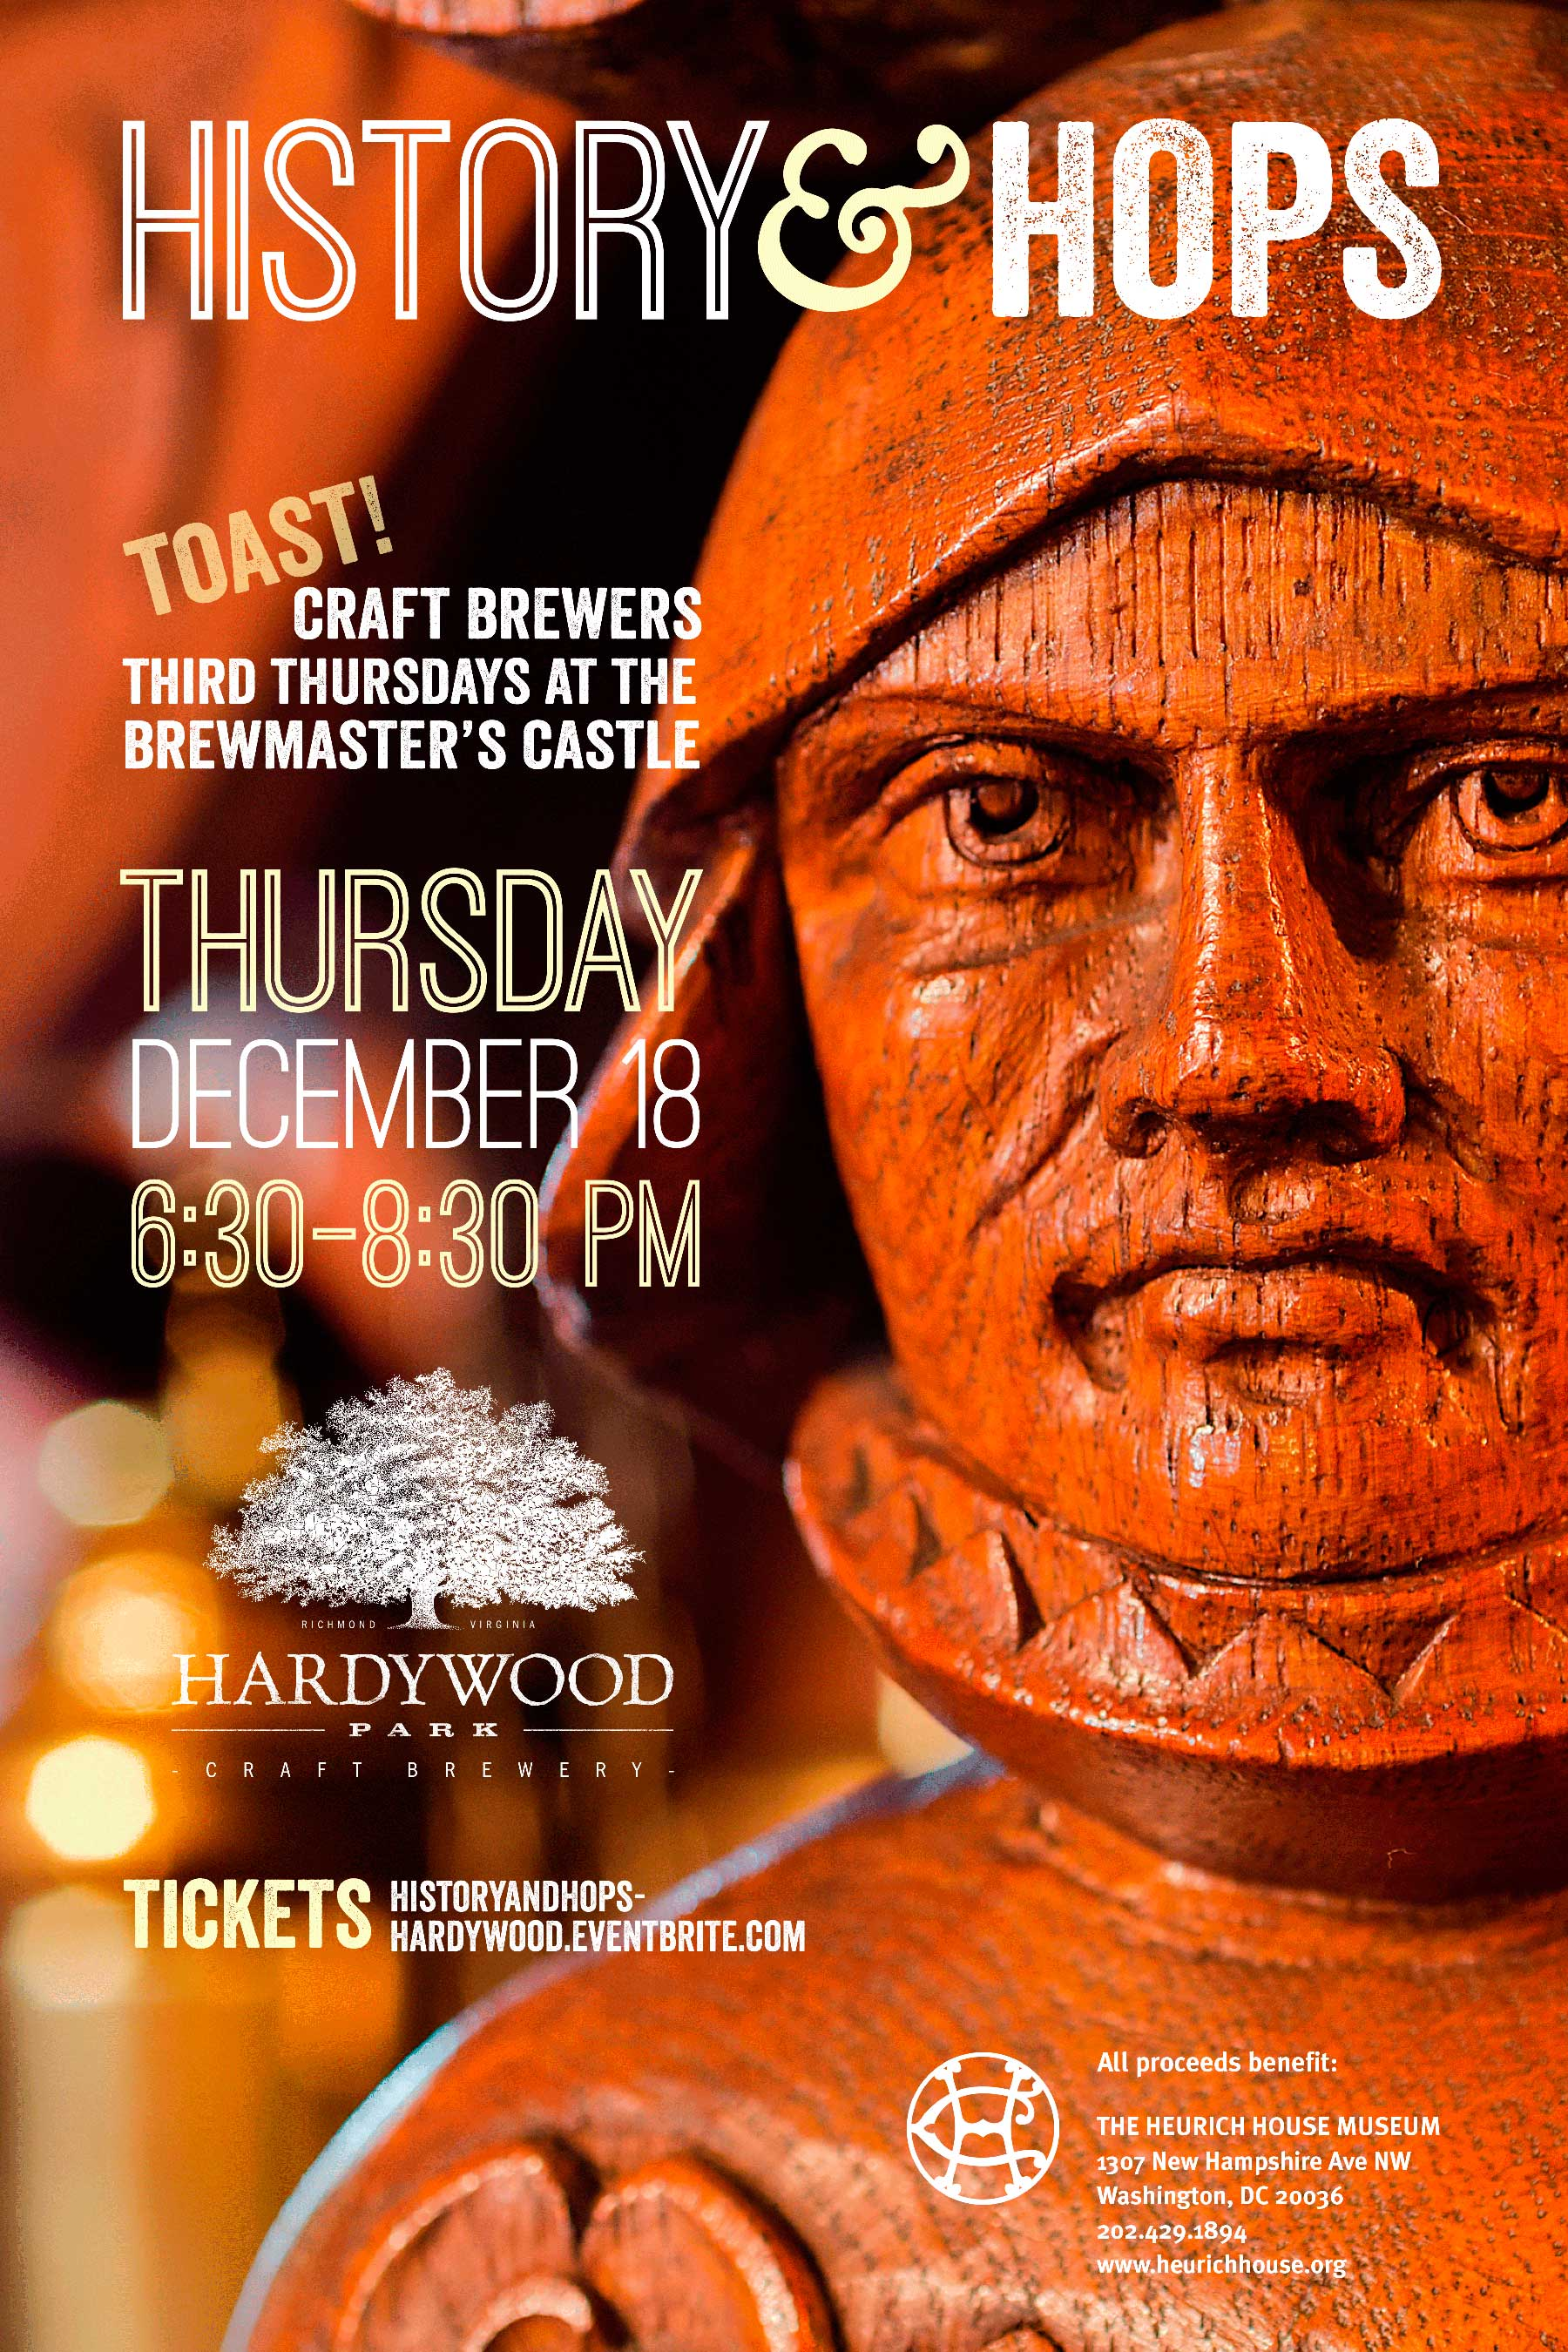 History & Hops featuring Hardywood Park Craft Brewery